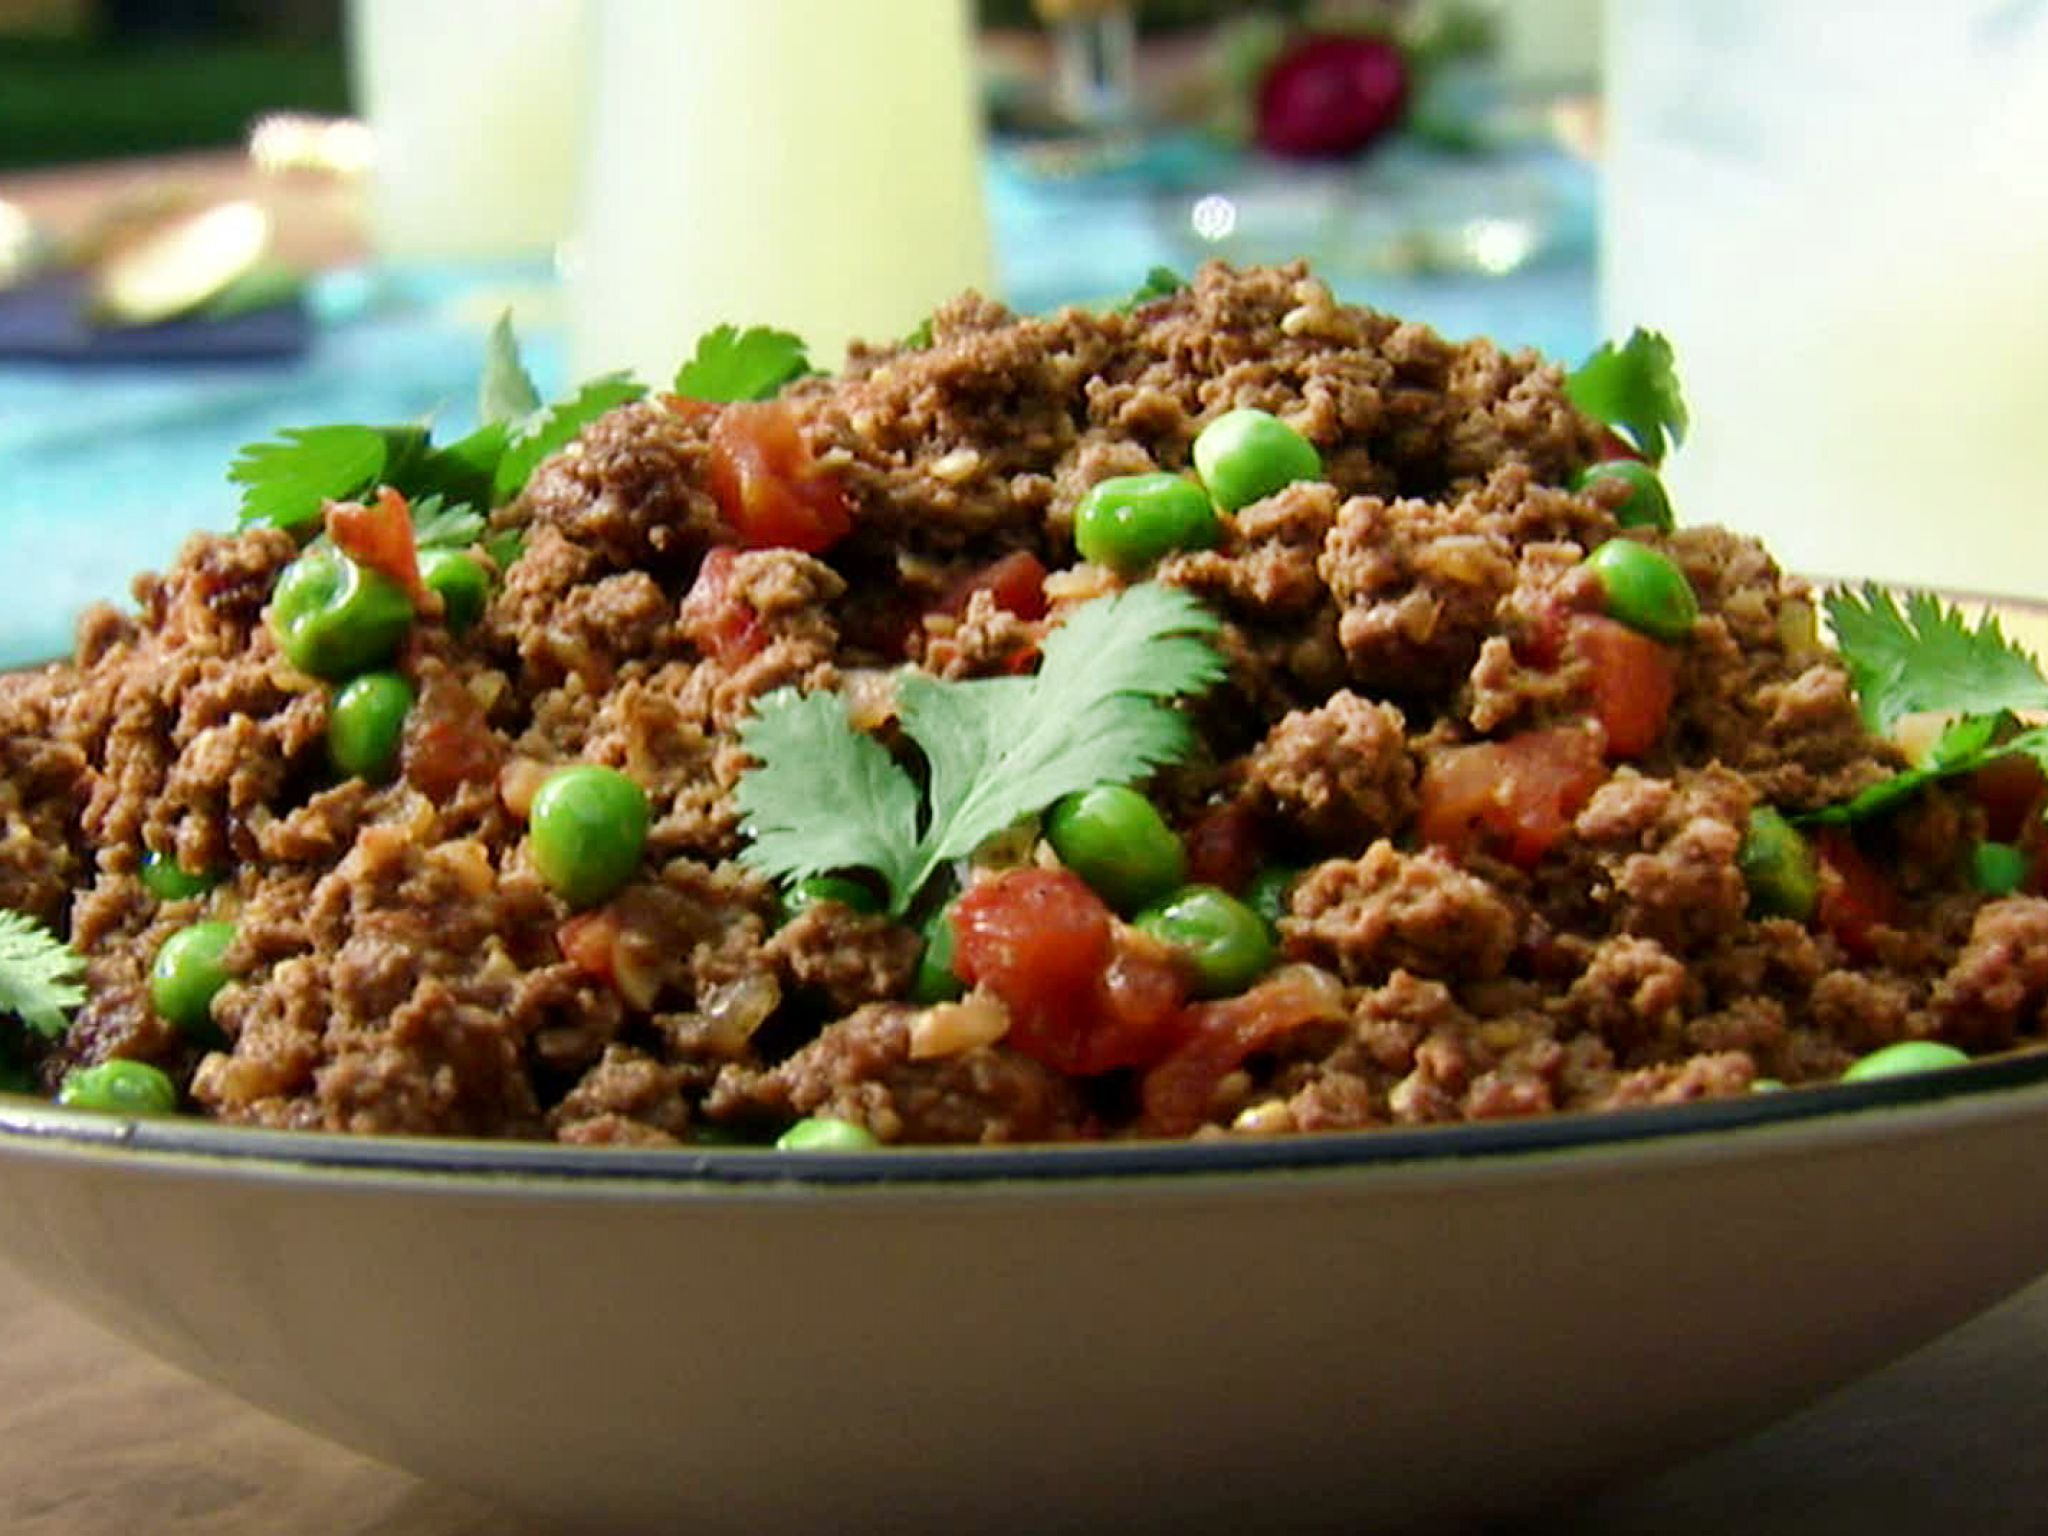 Kheema Indian Ground Beef With Peas Recipe Food Network Recipes Pea Recipes Ground Beef